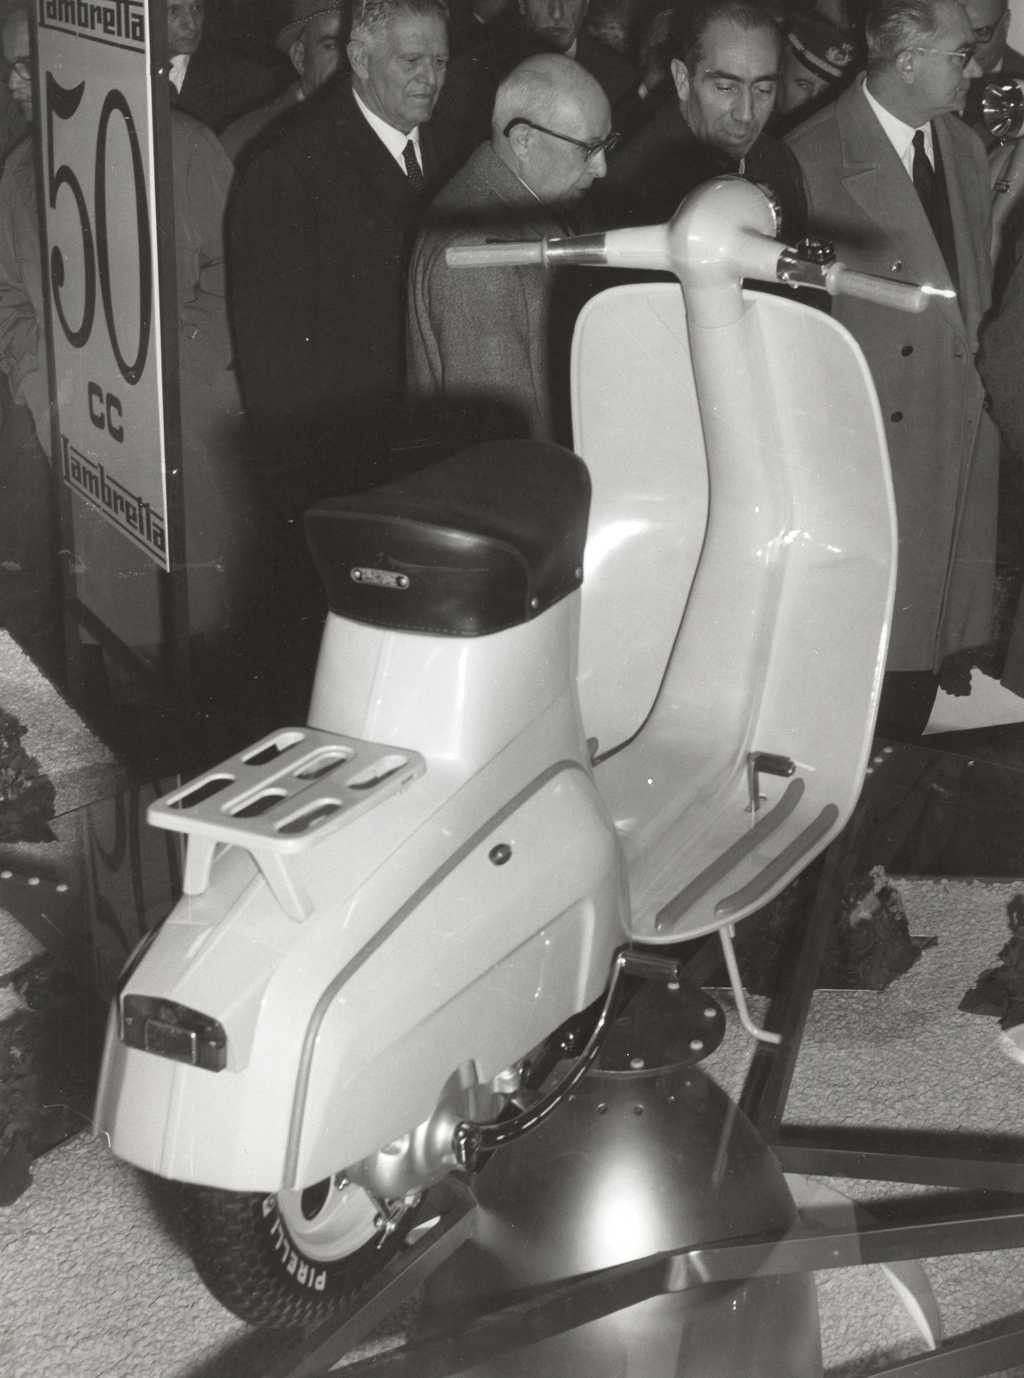 1961 Presentation of the new Lambretta 50 in the Milan exhibiton